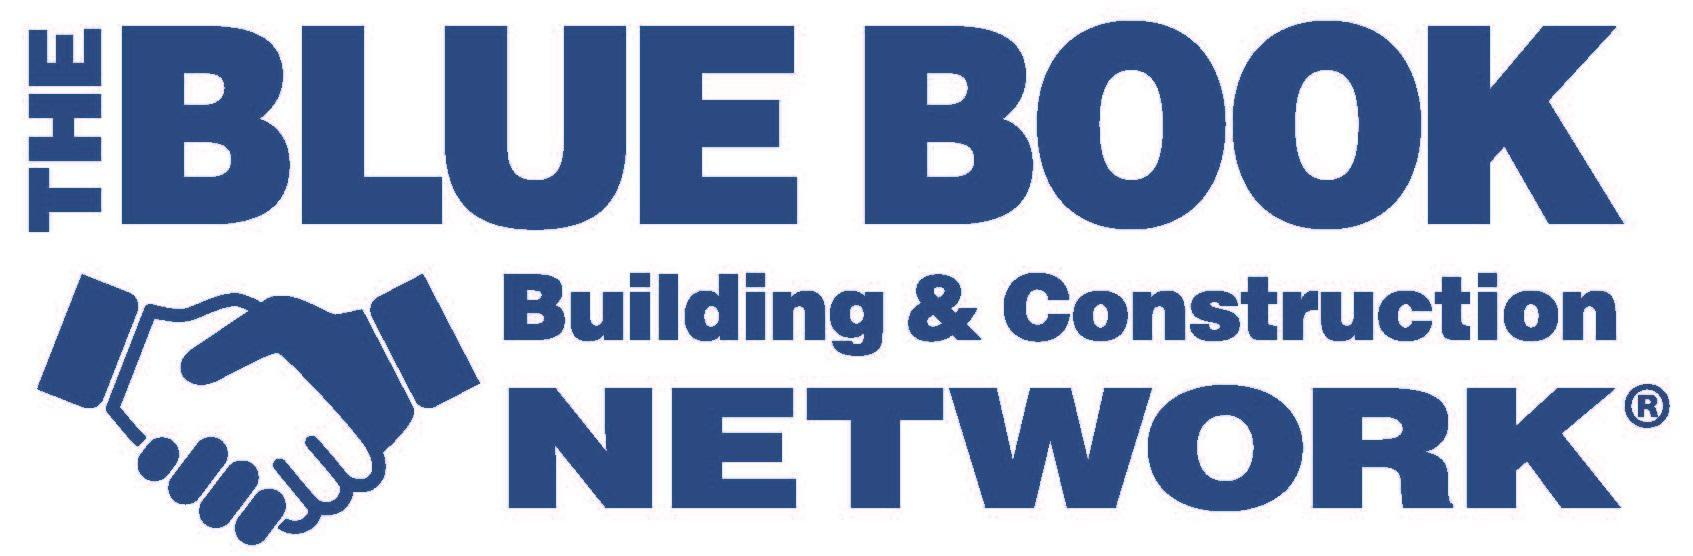 The Blue Book Competitors, Revenue and Employees - Owler Company Profile